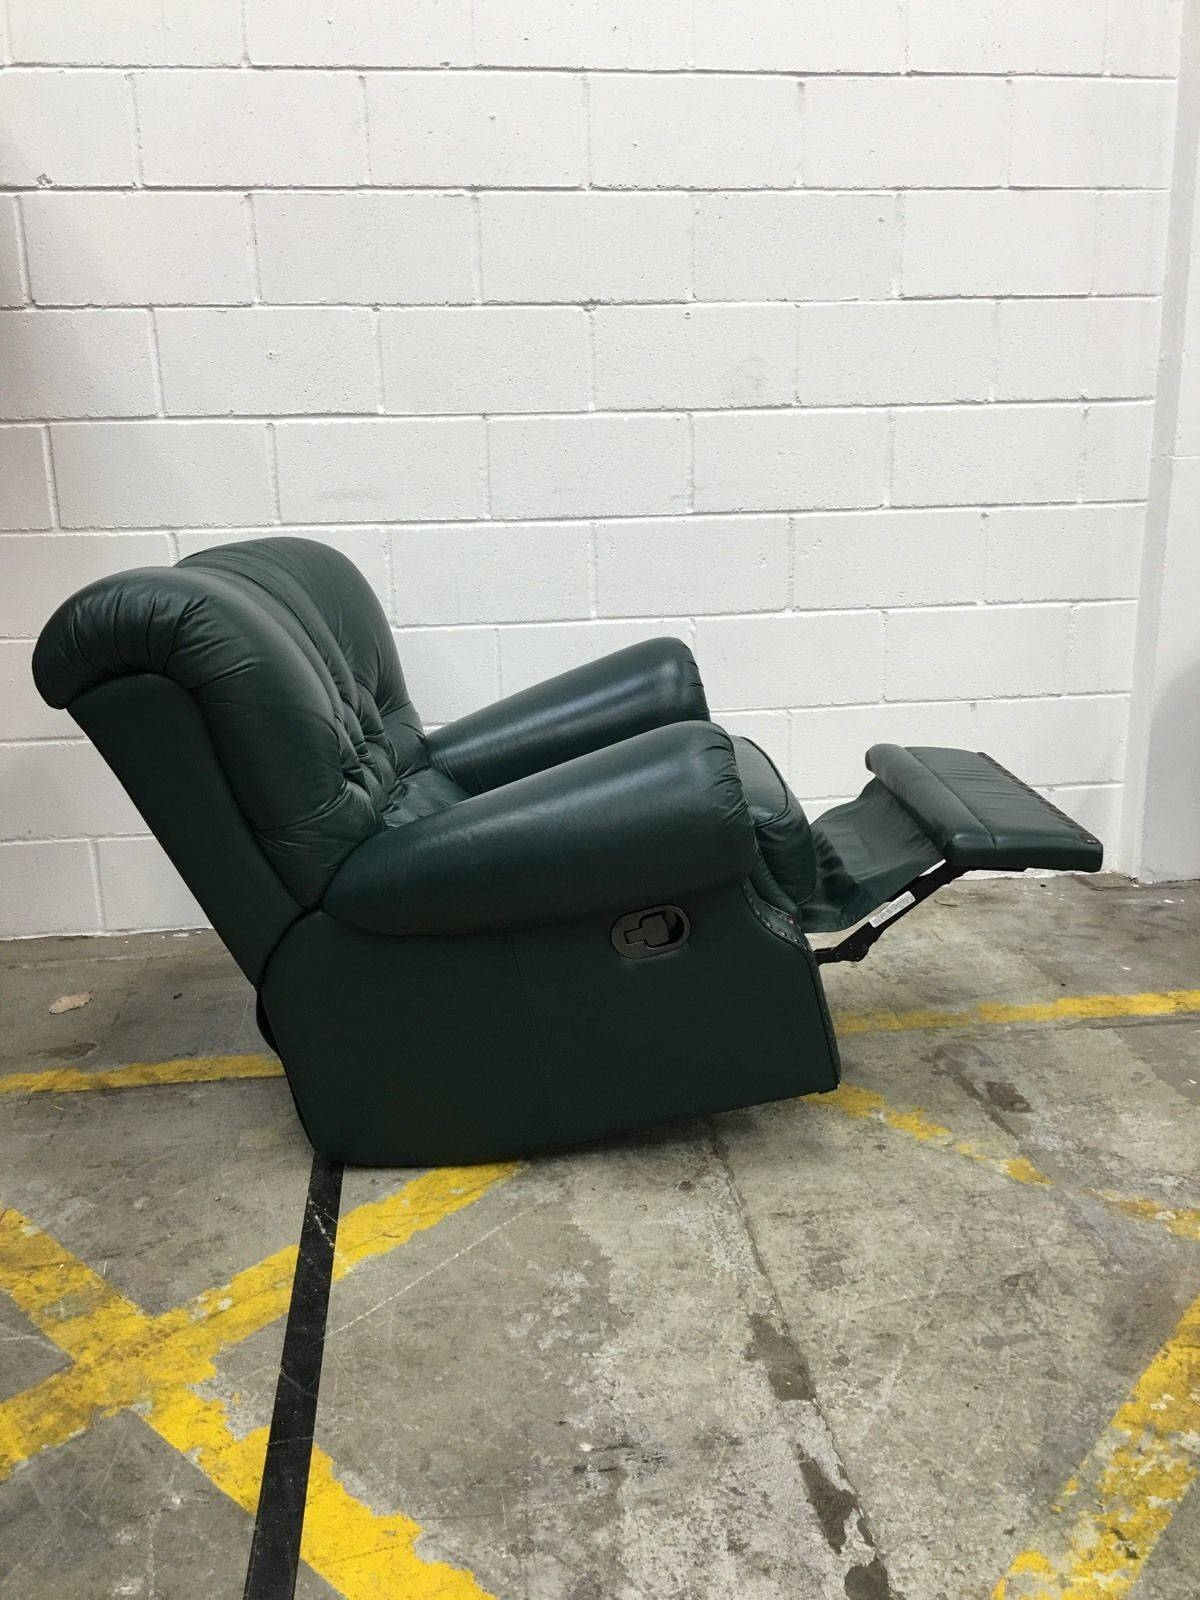 Vintage Green Leather Chesterfield Recliner Chair - Aherns Furniture inside Chesterfield Recliners (Image 28 of 30)